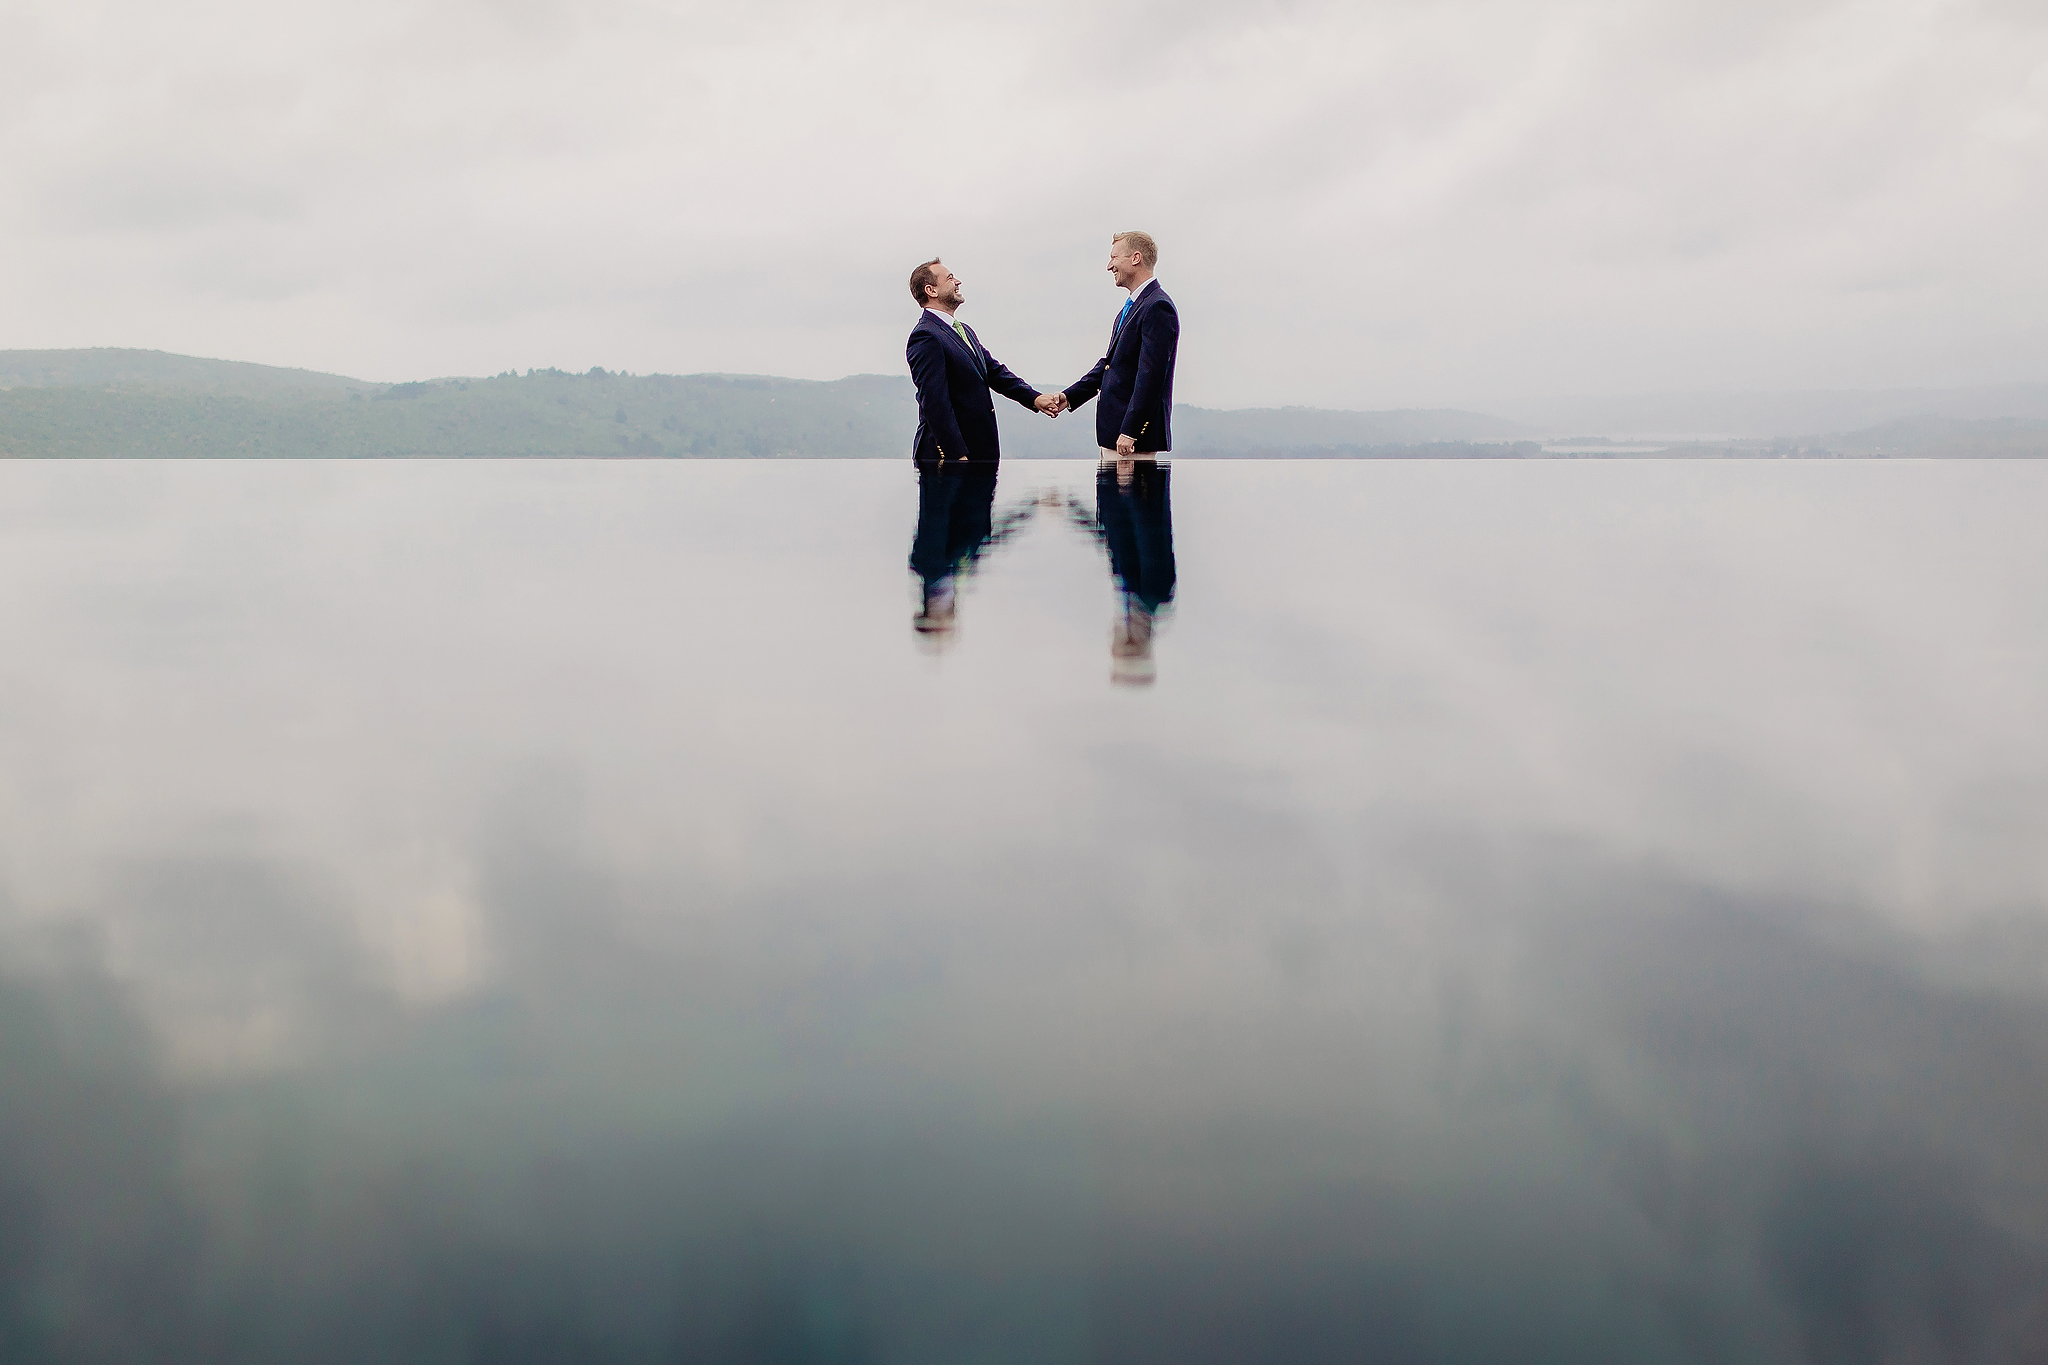 Groom and groom reflected in water - photo by Ruan Redelinghuys Photography